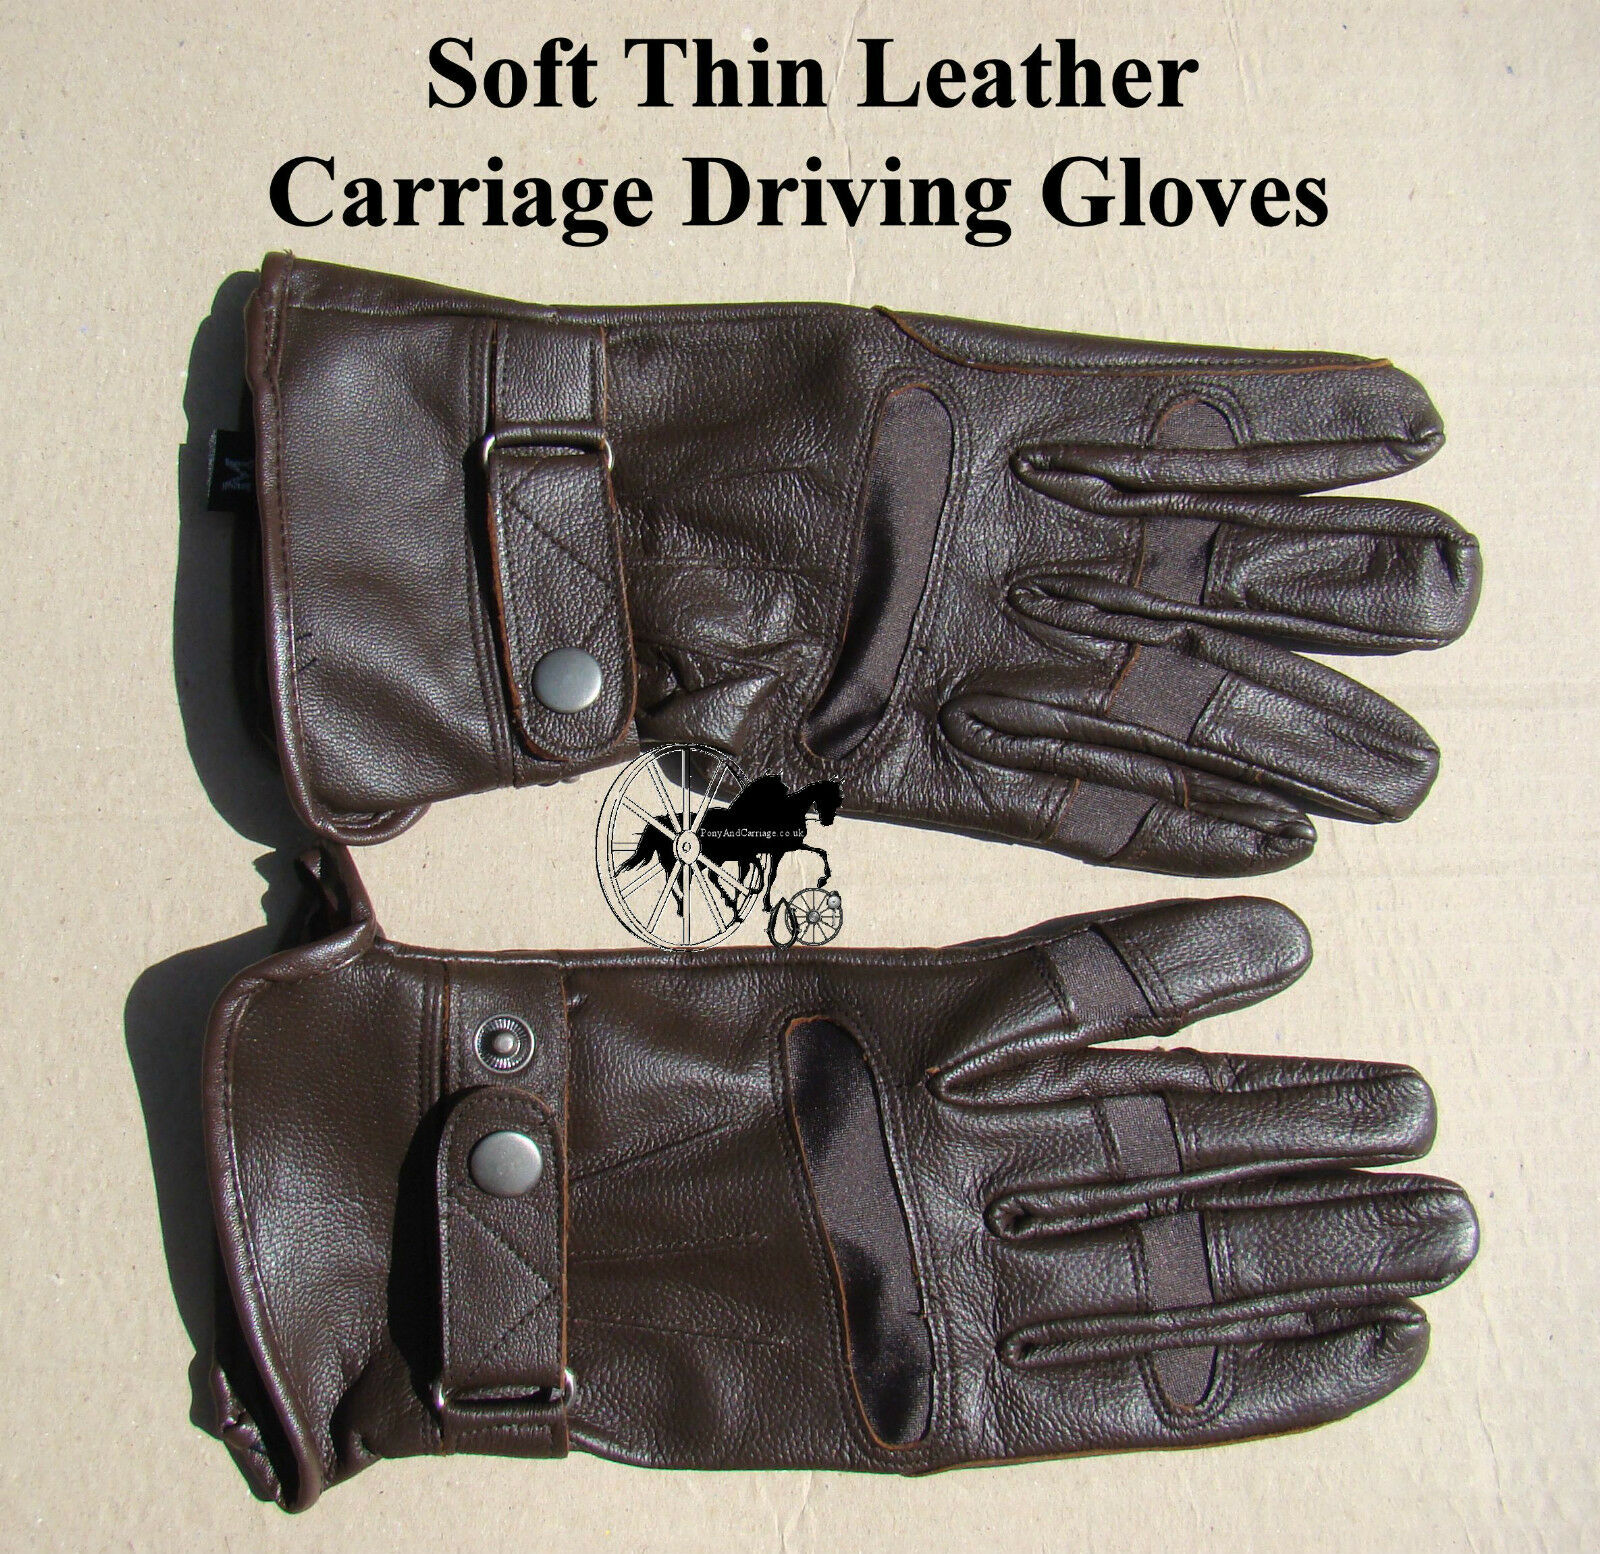 Carriage  Driving G s Soft Thin Leather Dark Brown Sizes Small up to XL  free shipping & exchanges.